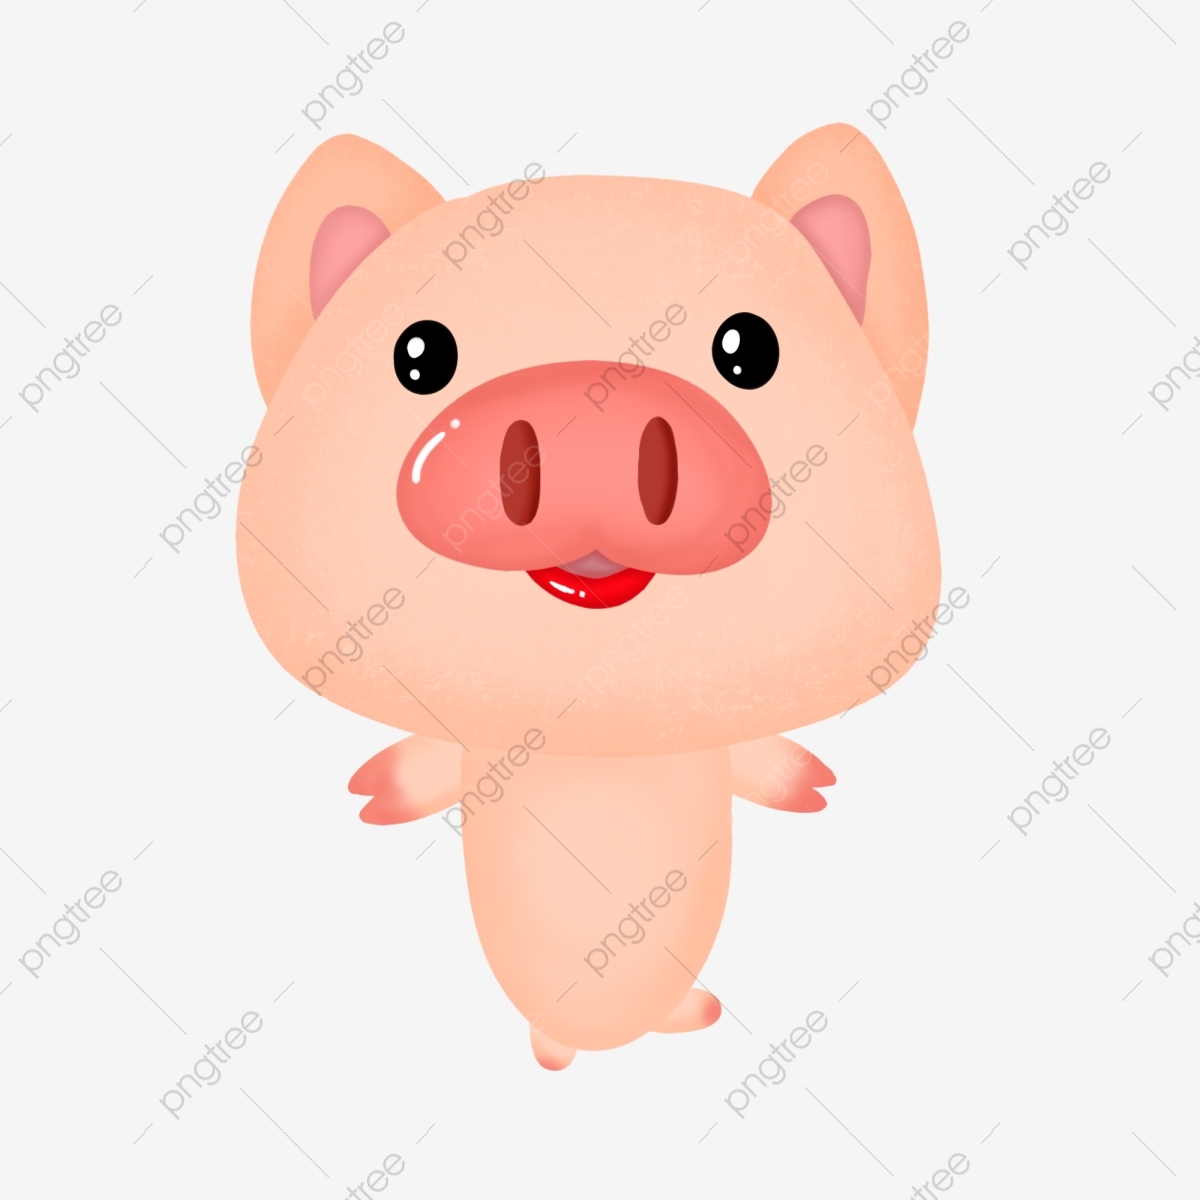 Year of the little. Clipart pig body